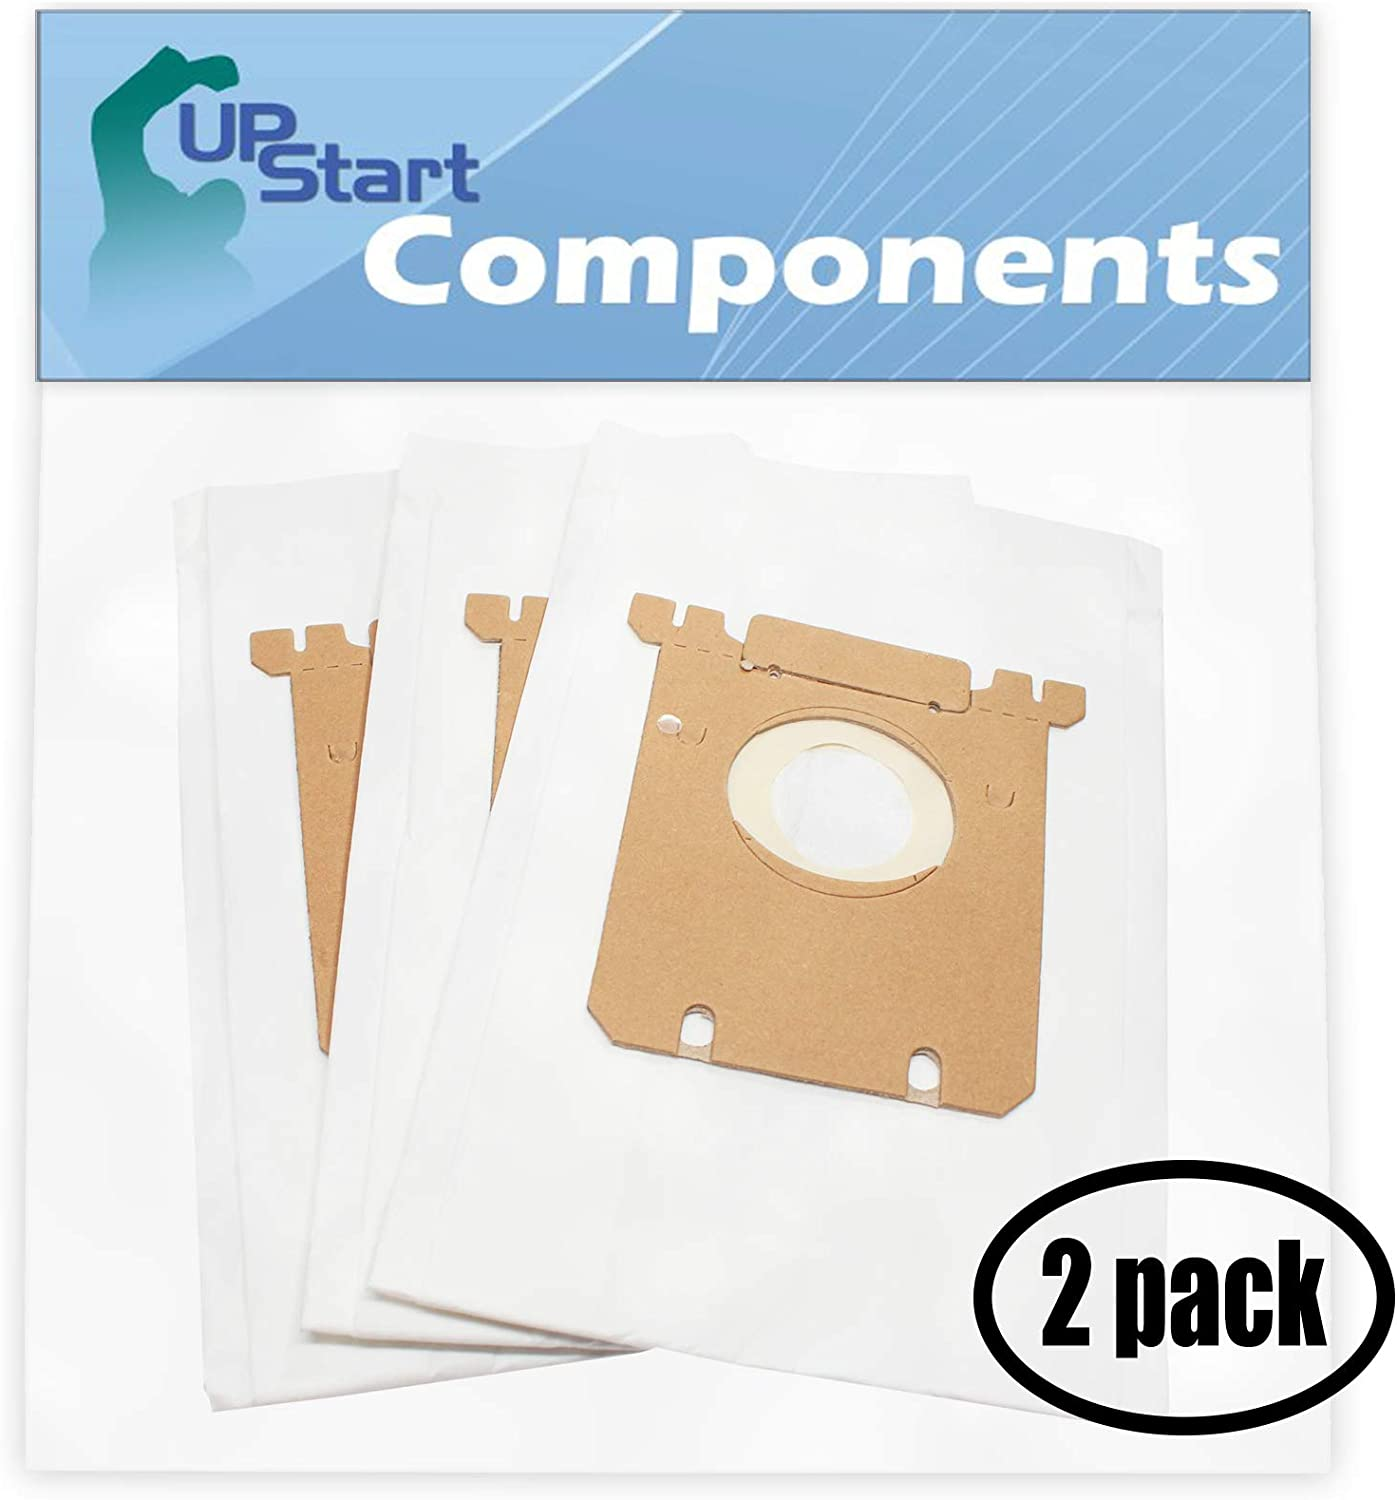 Upstart Battery 6 Replacement for Eureka 920 Series Style S Vacuum Bags - Compatible with Eureka 61230F, OX Vacuum Bags (2-Pack - 3 Vacuum Bags per Pack)